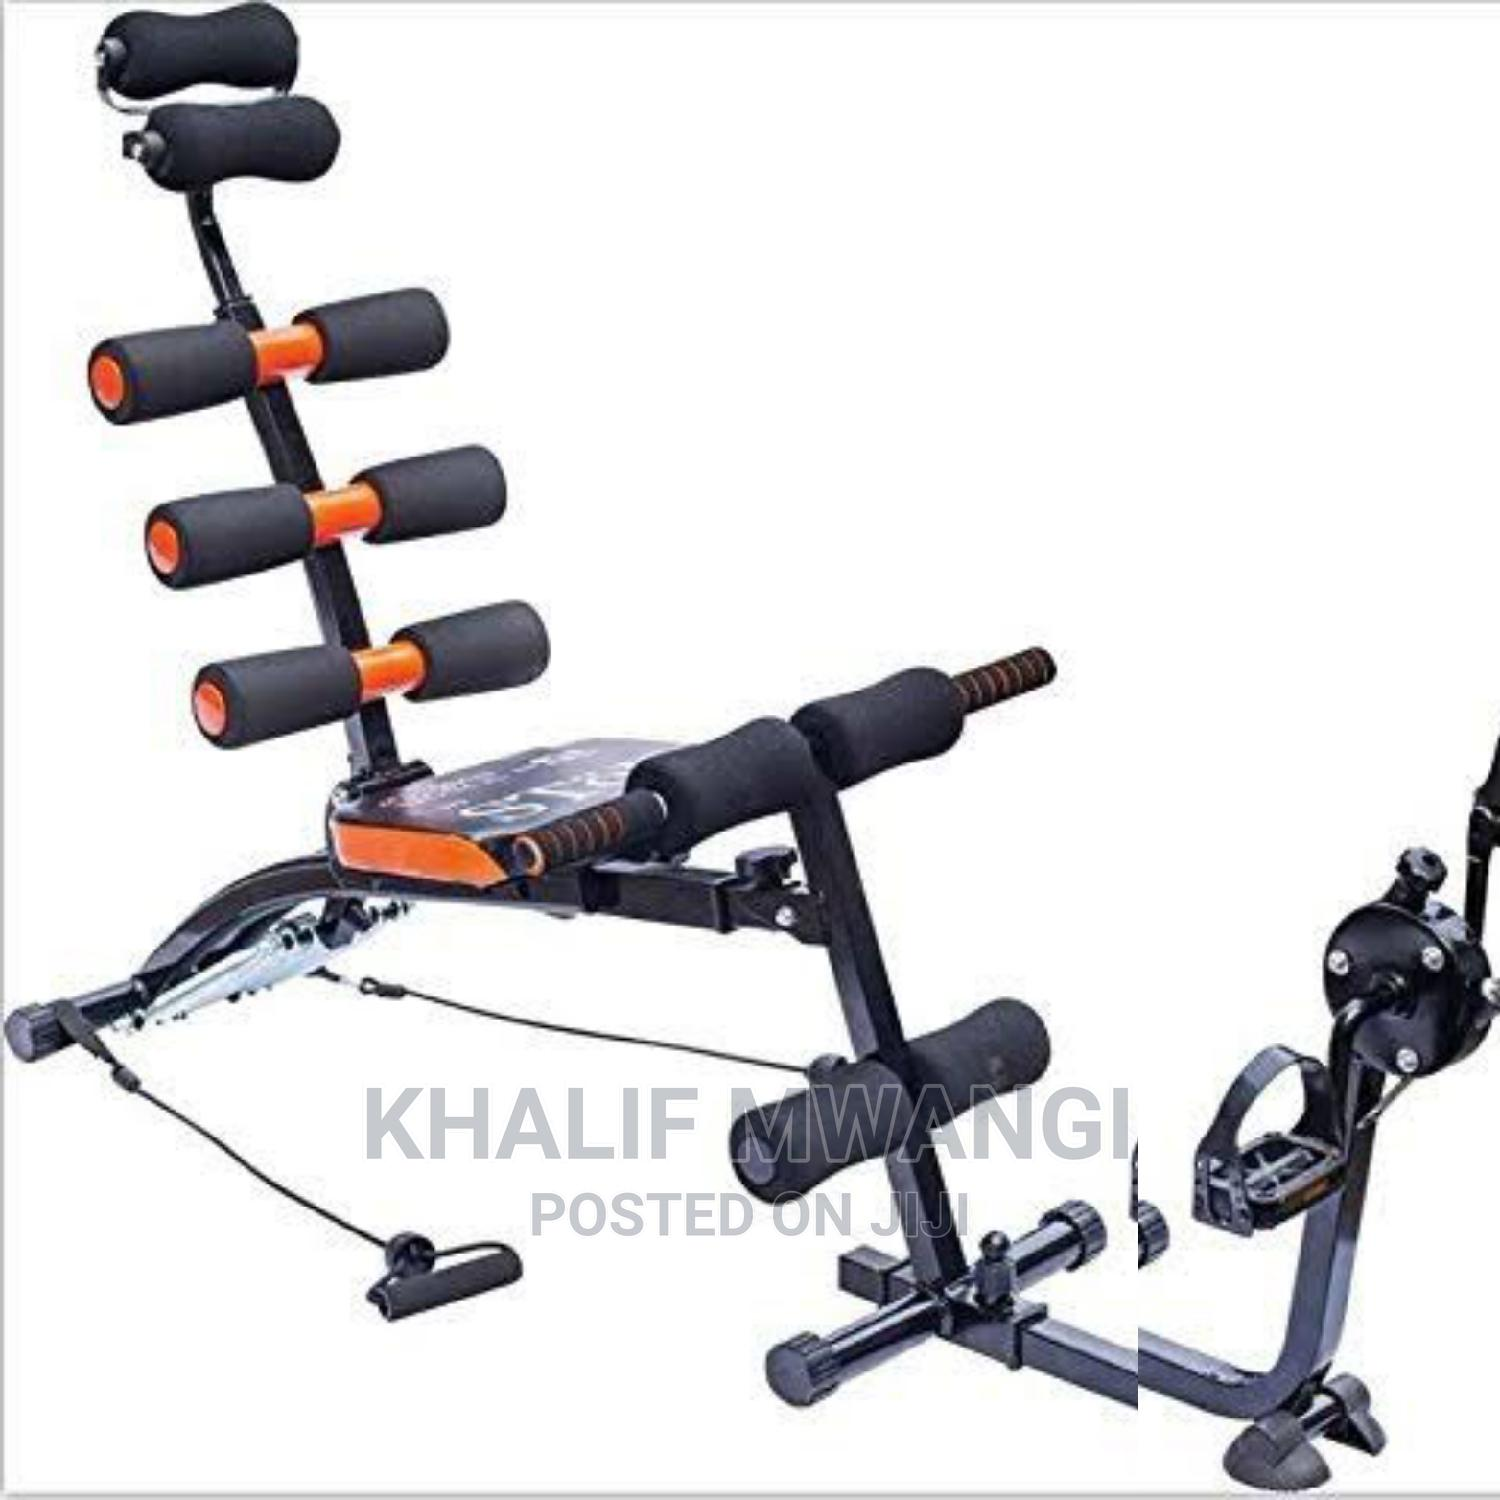 Archive: *6 Pack Care Wondercore Exercise With Pedal*